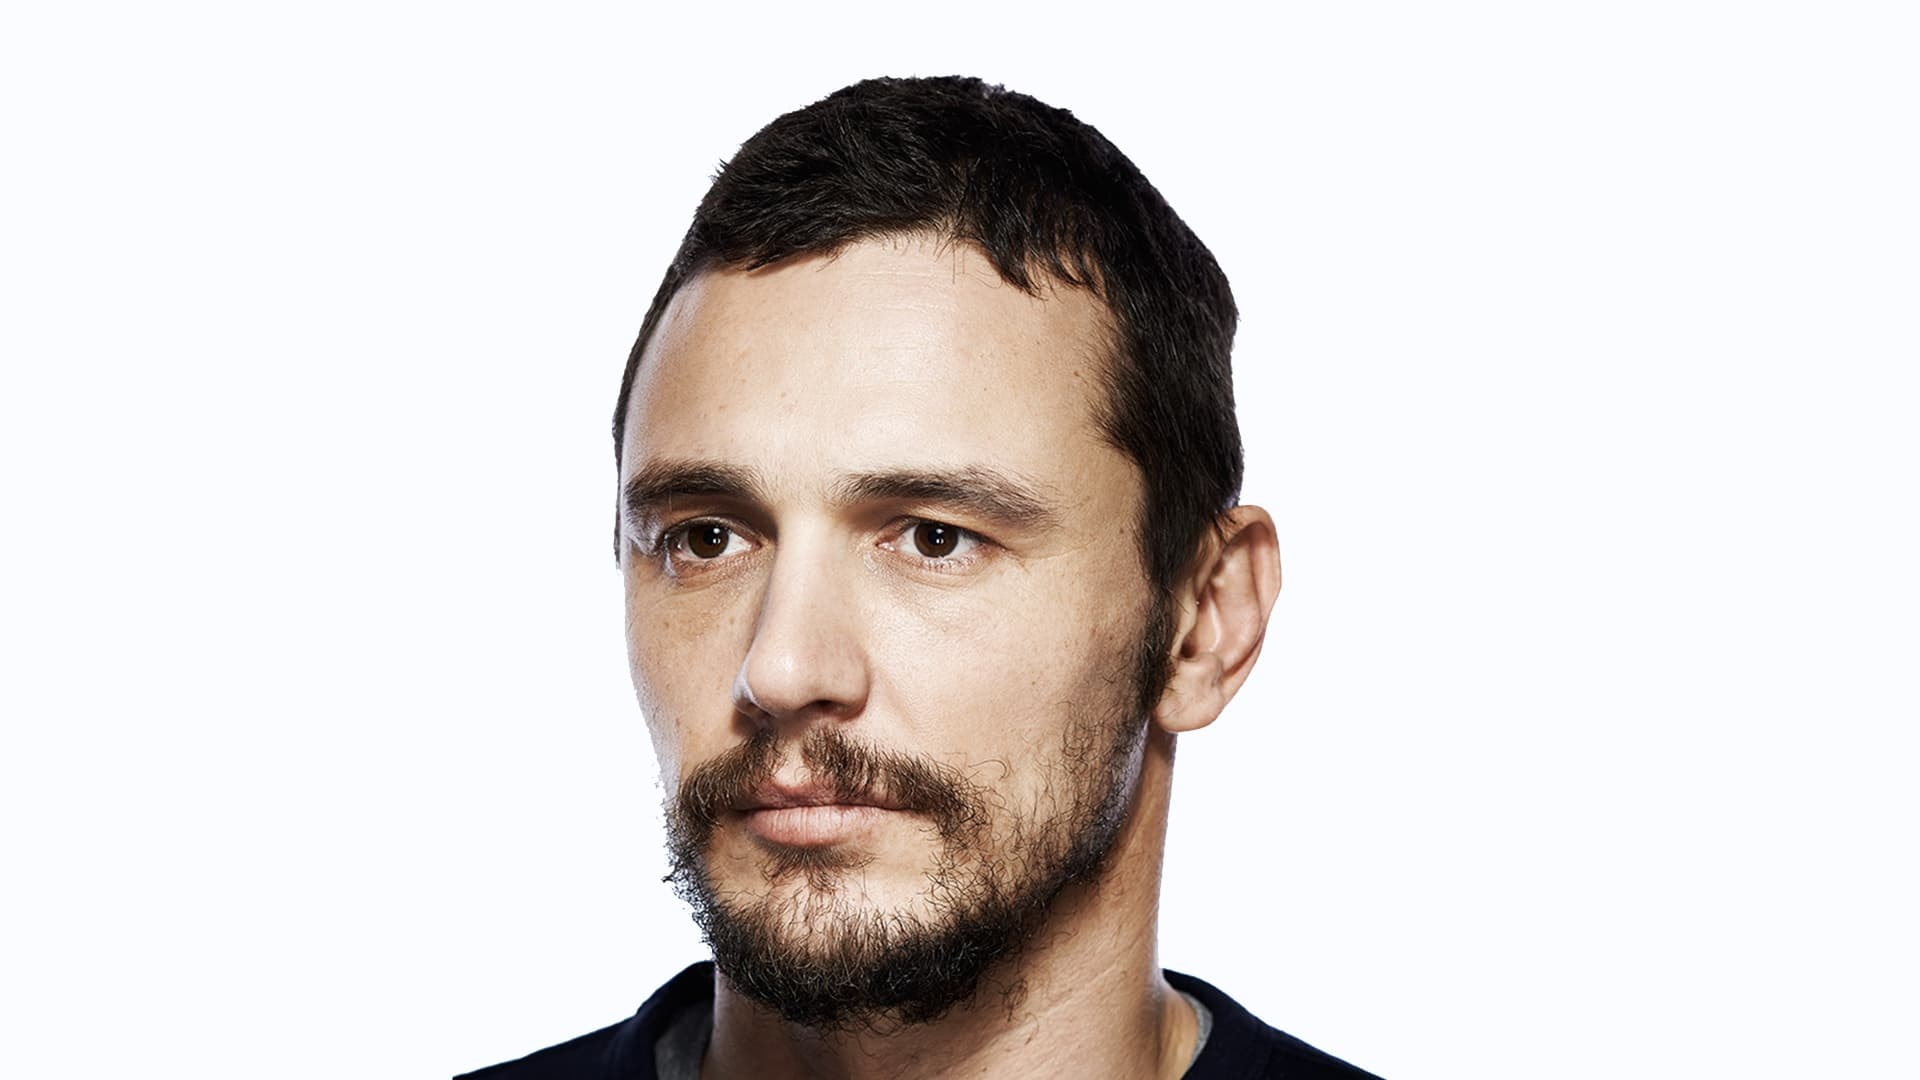 James Franco Beard 16+ james franco wallpapers hd high quality ... James Franco